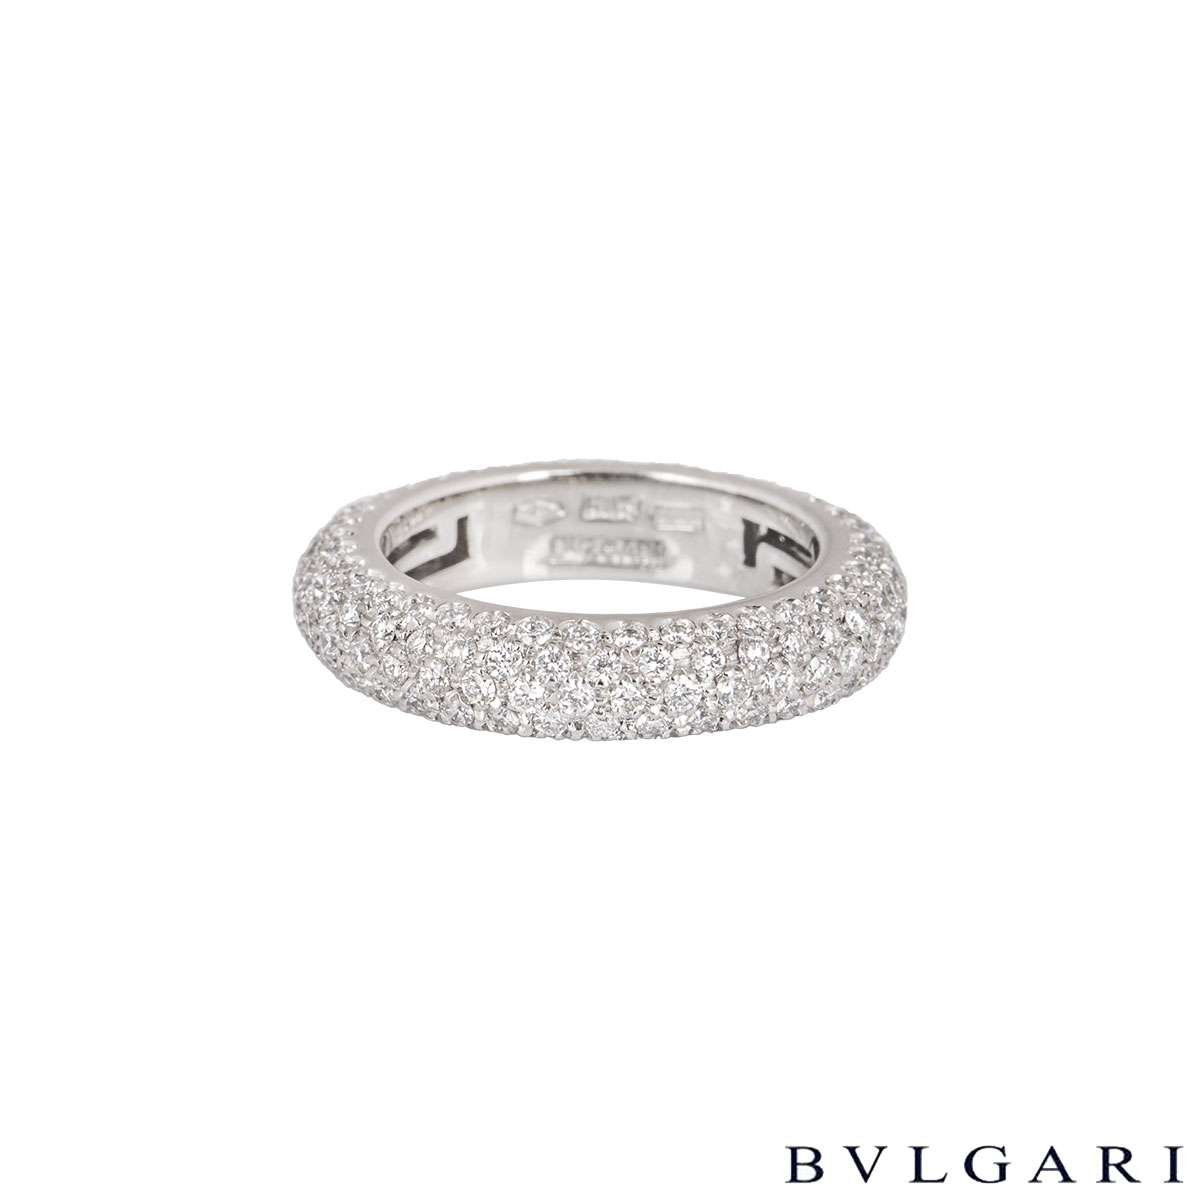 Bvlgari White Gold Pave Diamond Ring